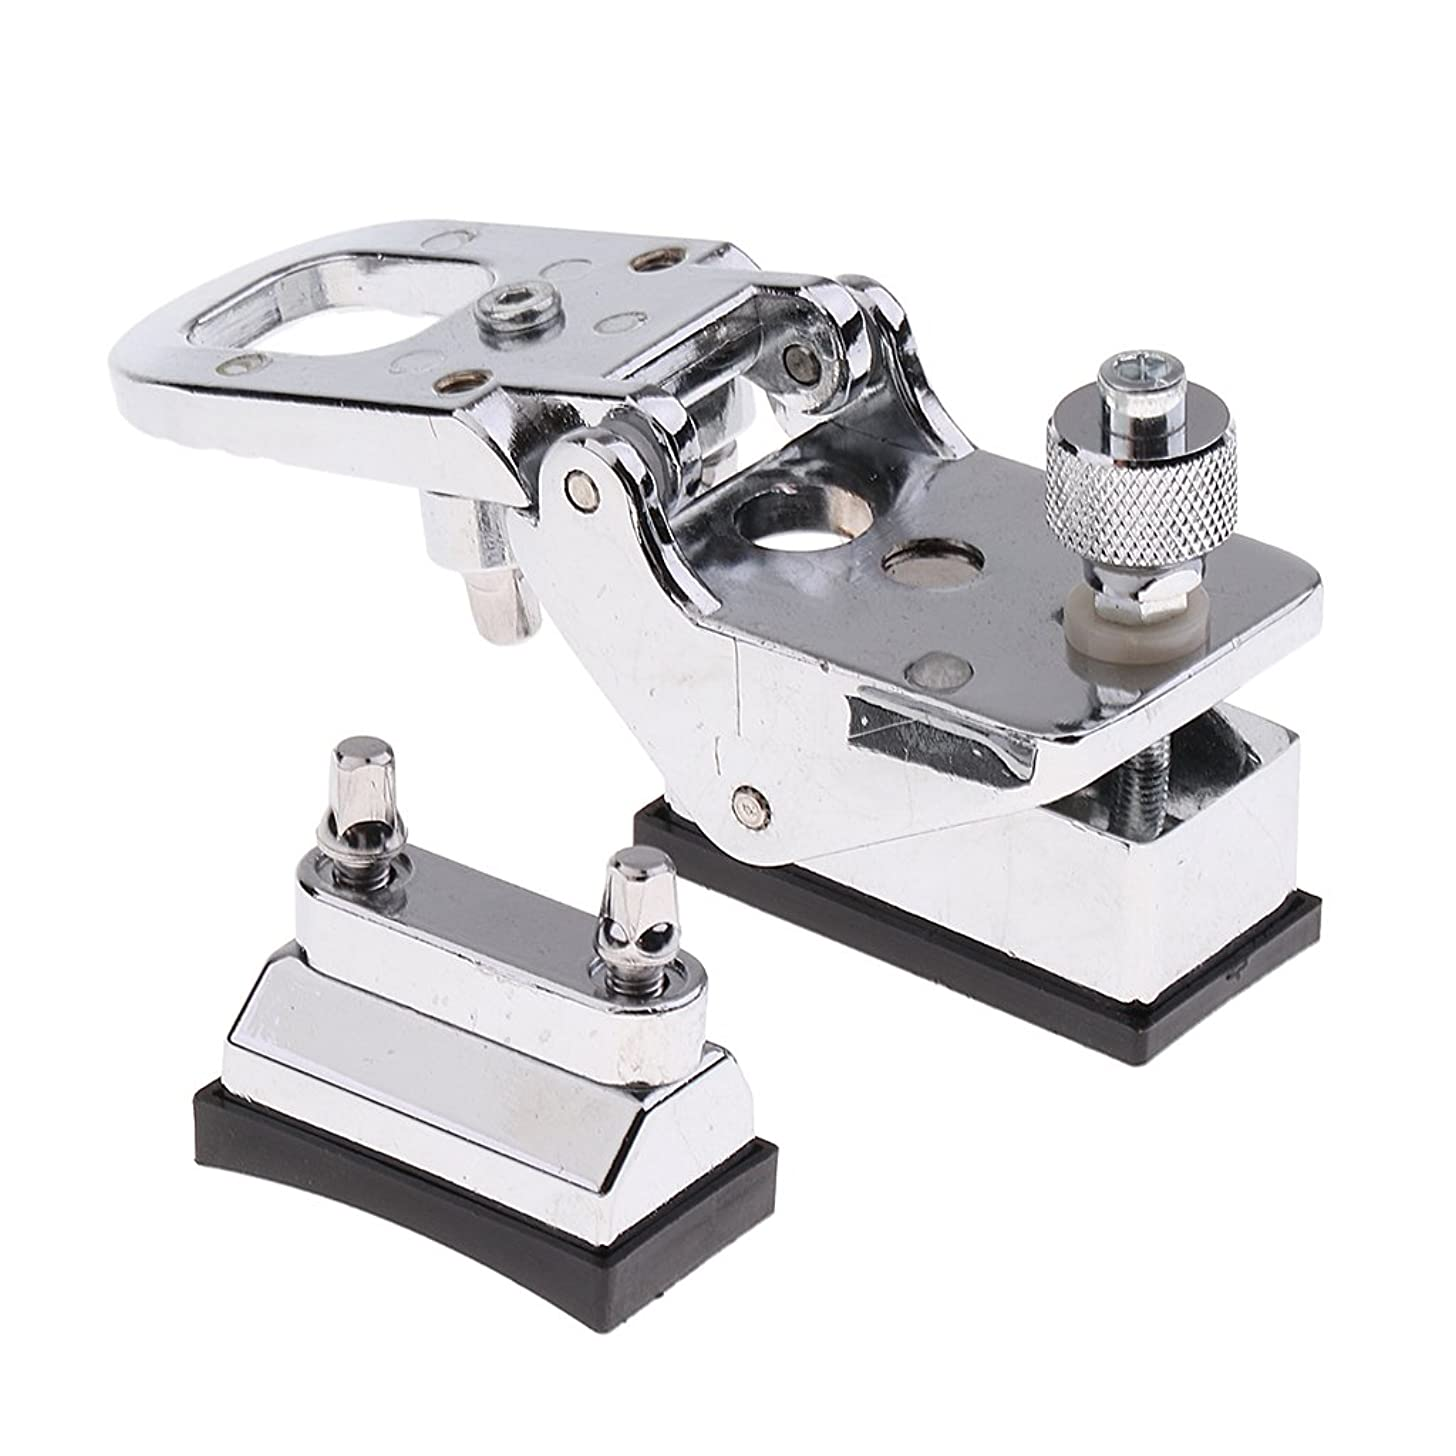 Homyl Adjust Drum Clamp Holder Cymbal Holder Clamp Musical Instrument Parts Silver 2.17x1.18x2.17inch